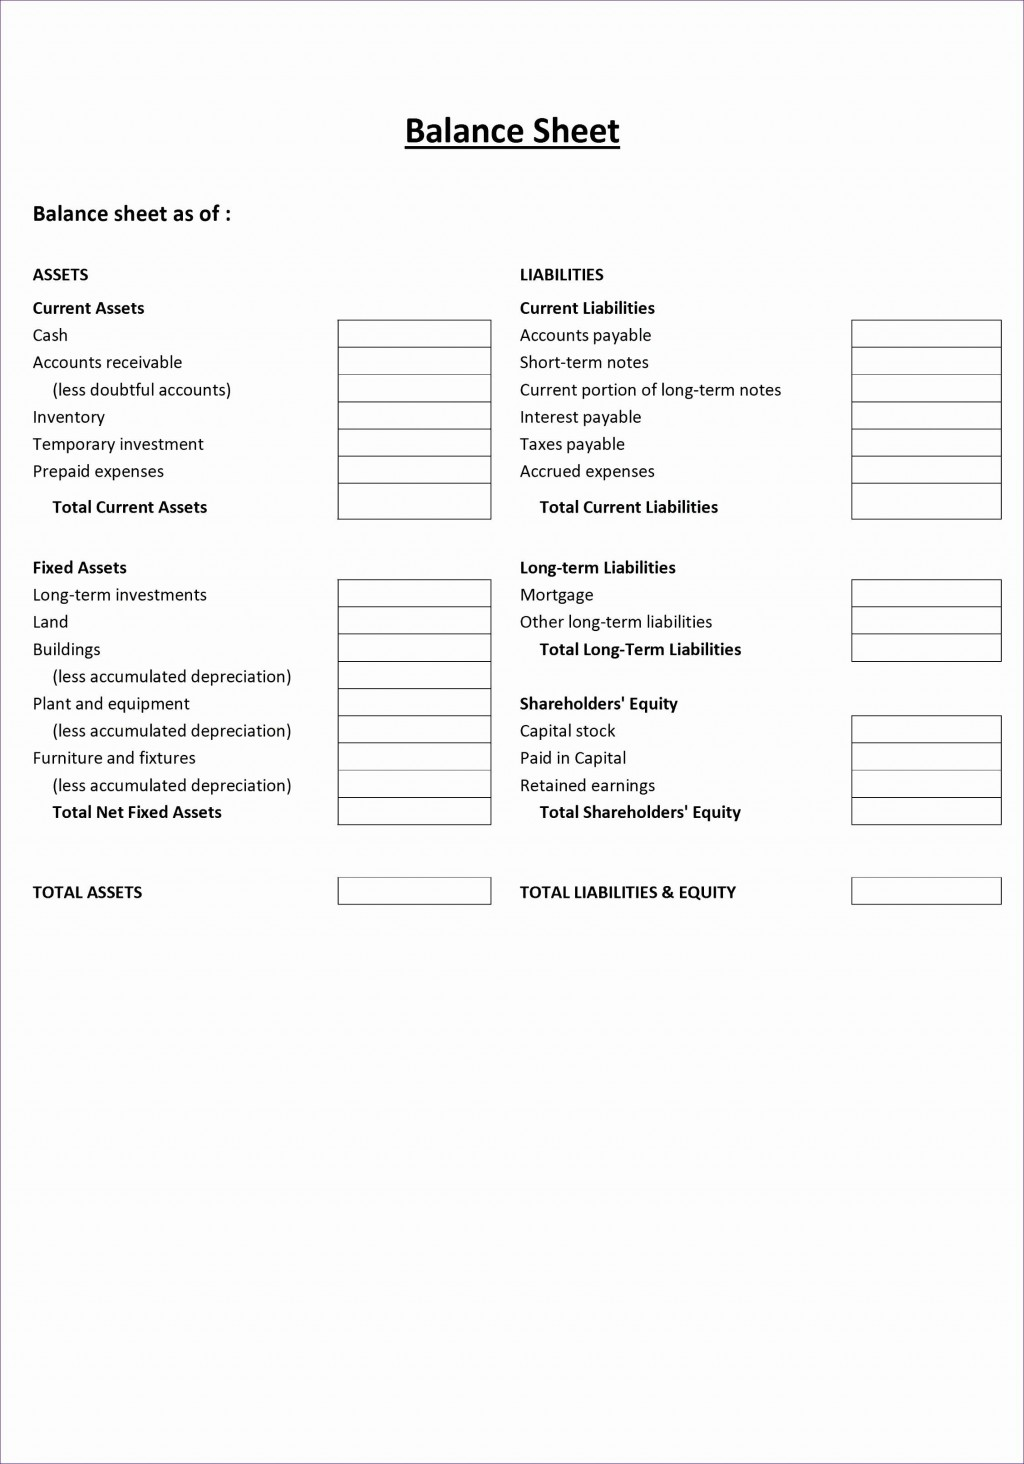 001 Fearsome Simple Balance Sheet Template Photo  Example For Small Busines Sample A ChurchLarge